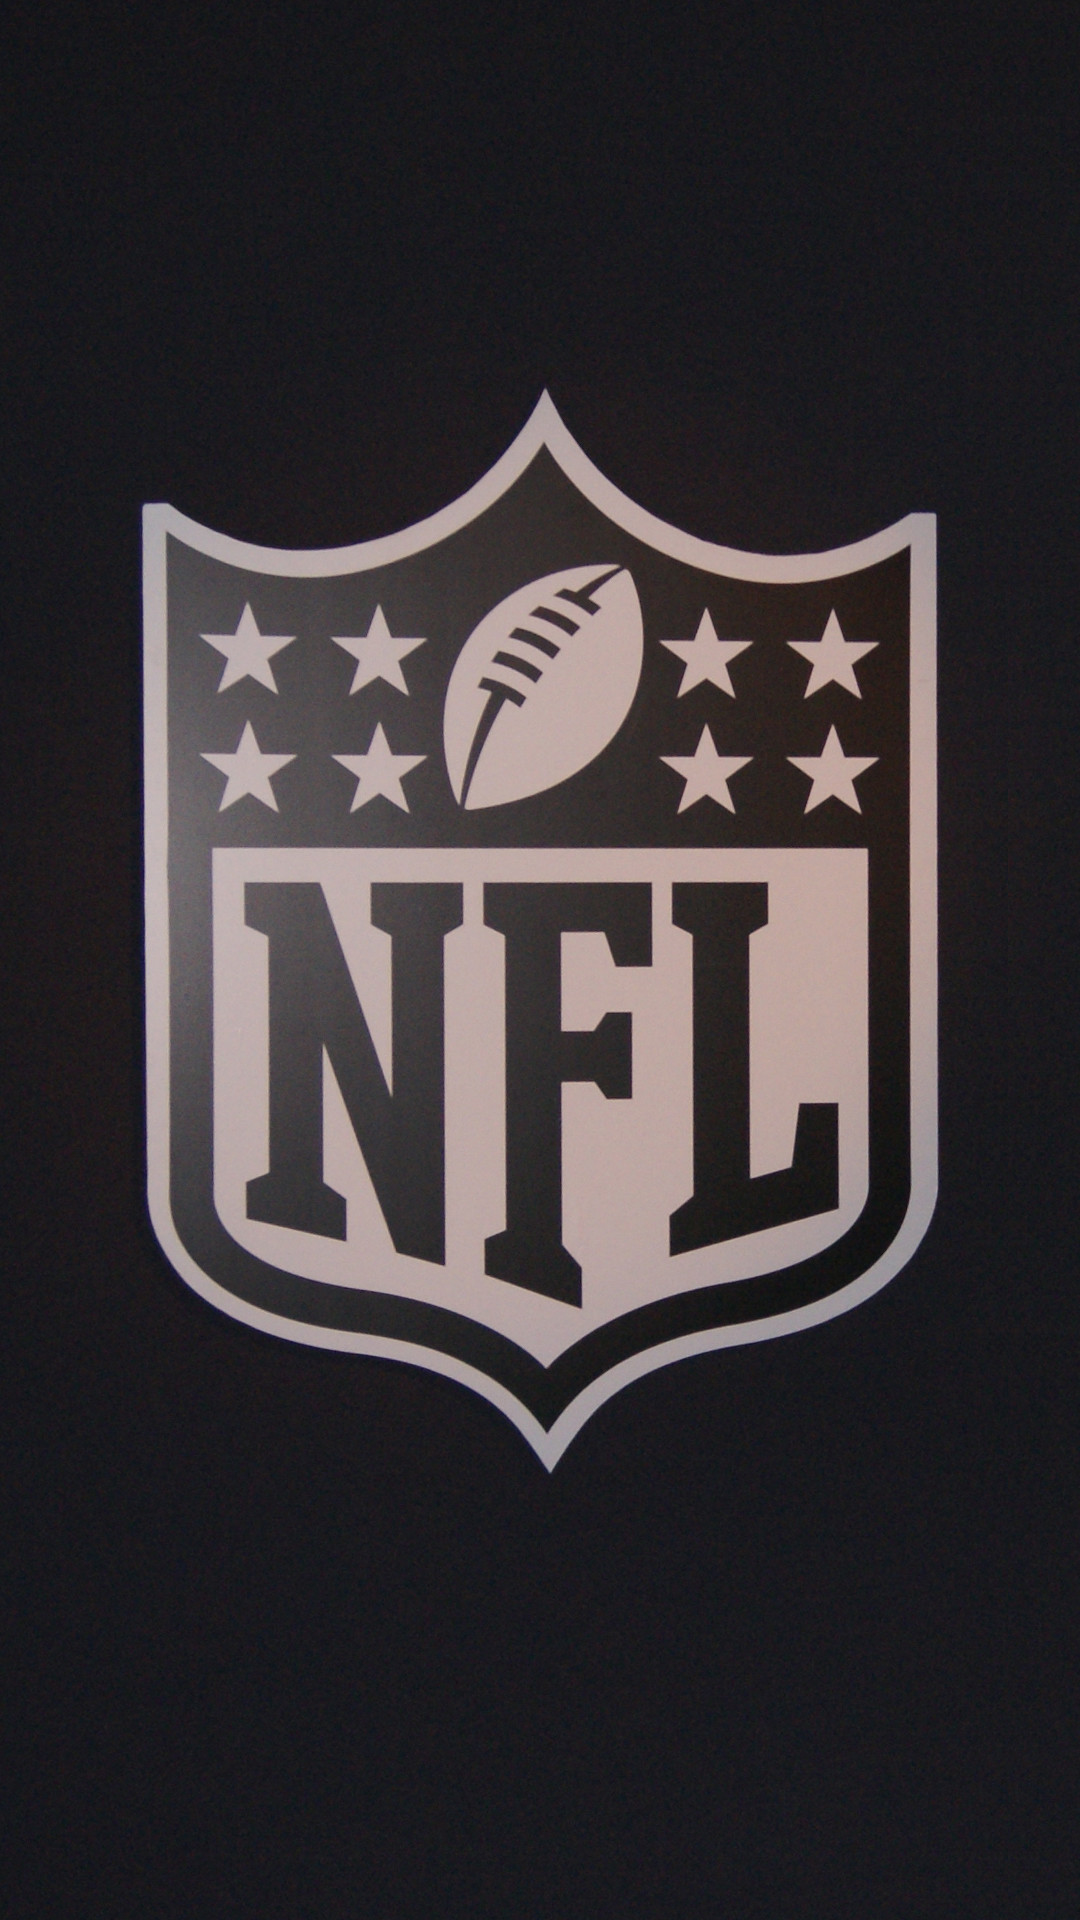 1080x1920 NFL - Best htc one wallpapers, free and easy to download